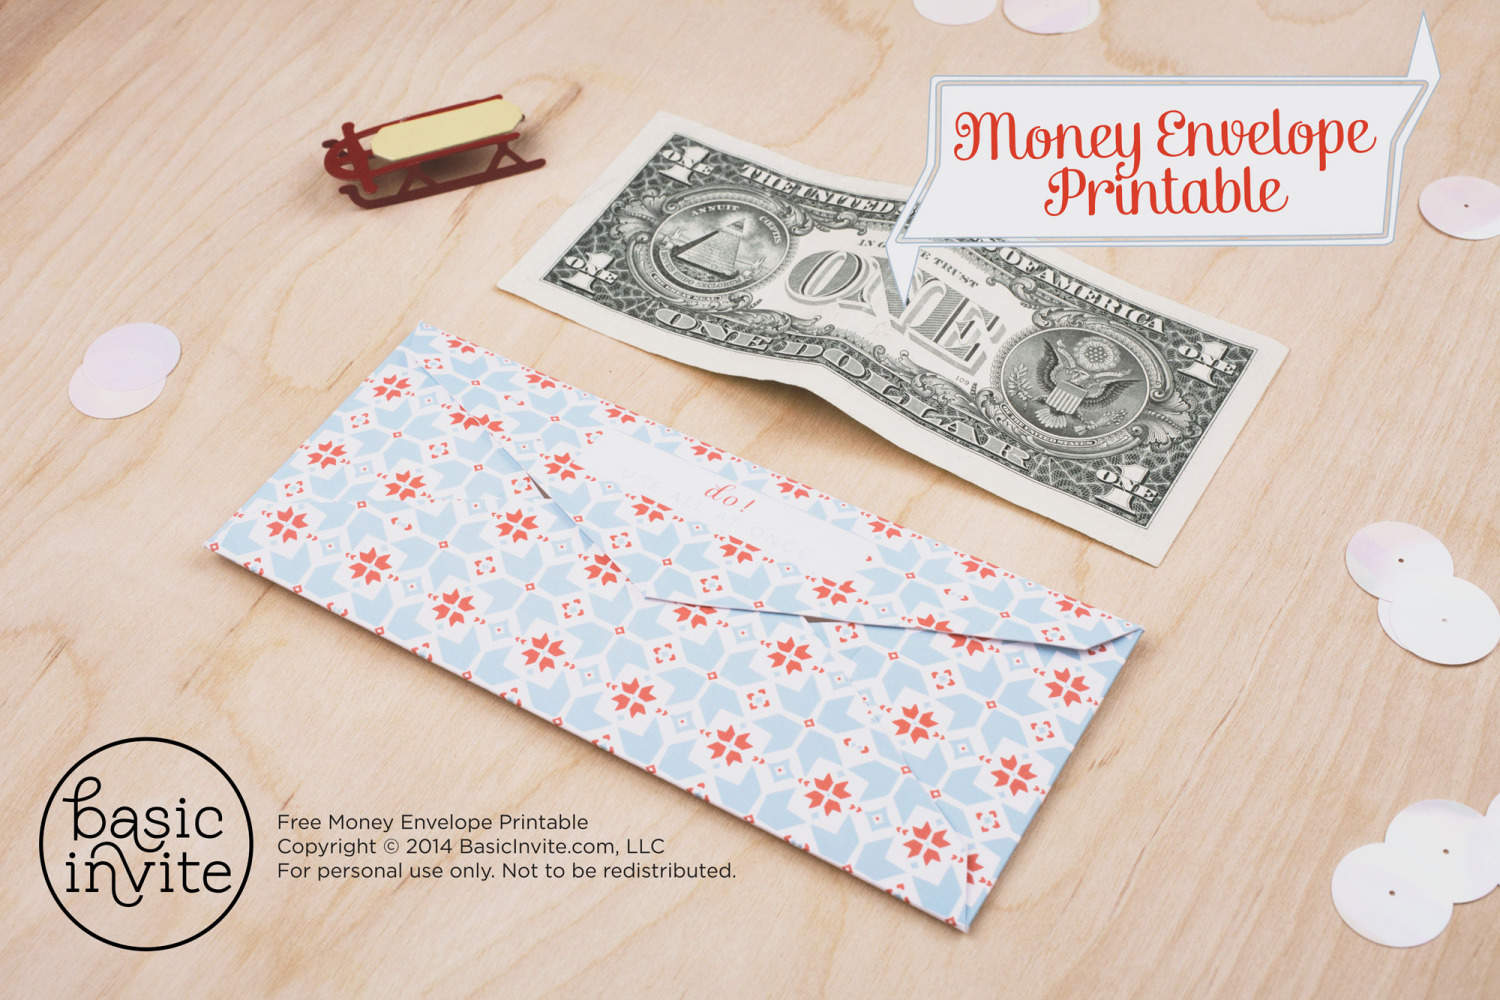 photograph about Printable Cash Envelopes titled absolutely free fiscal envelope printable